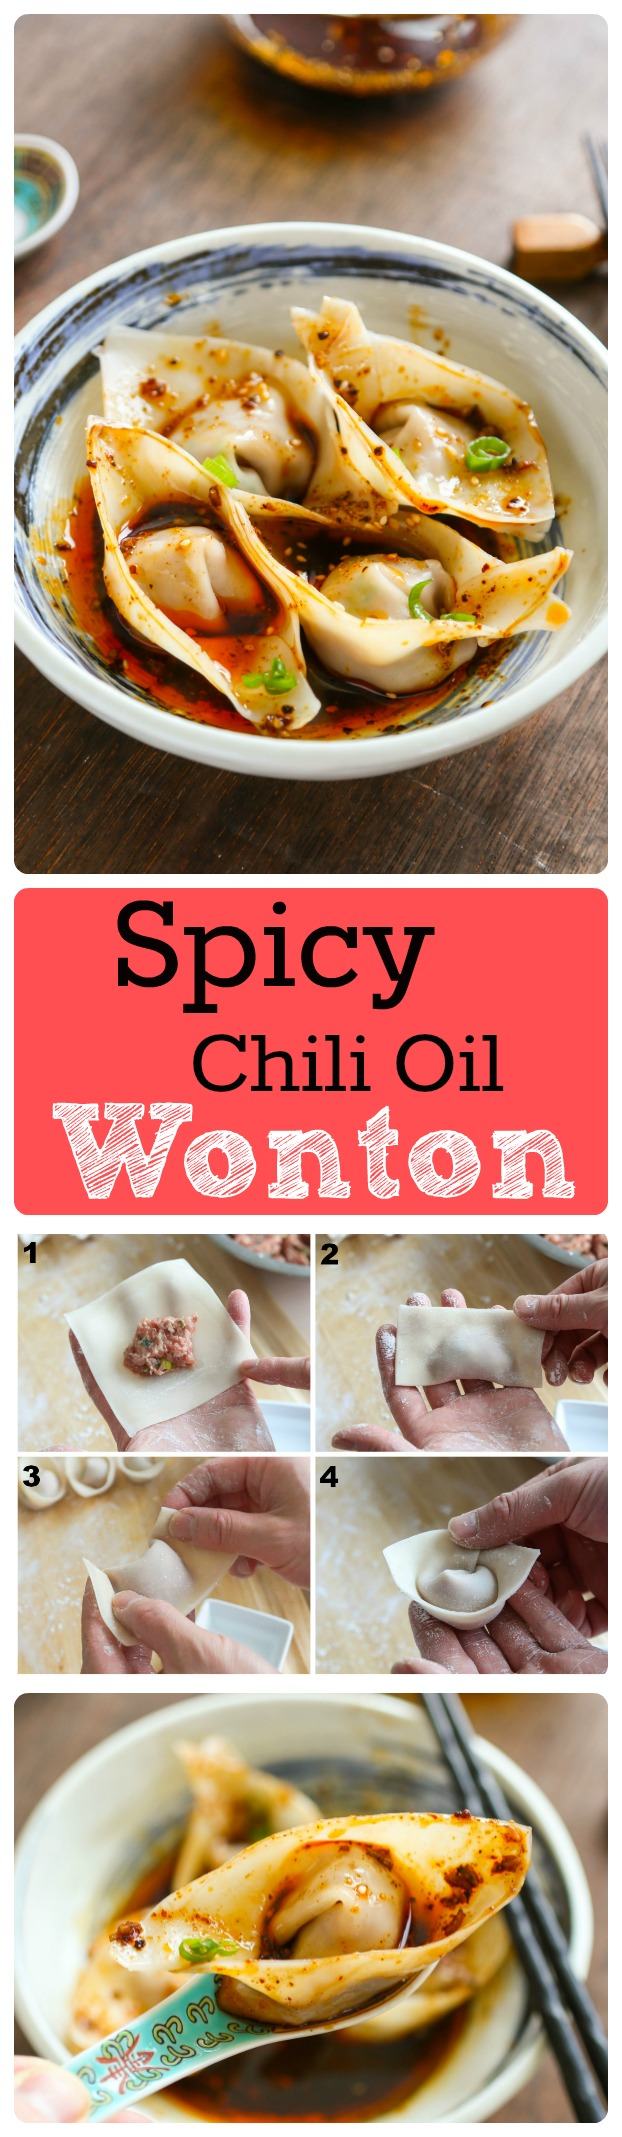 how to make red oil wontons